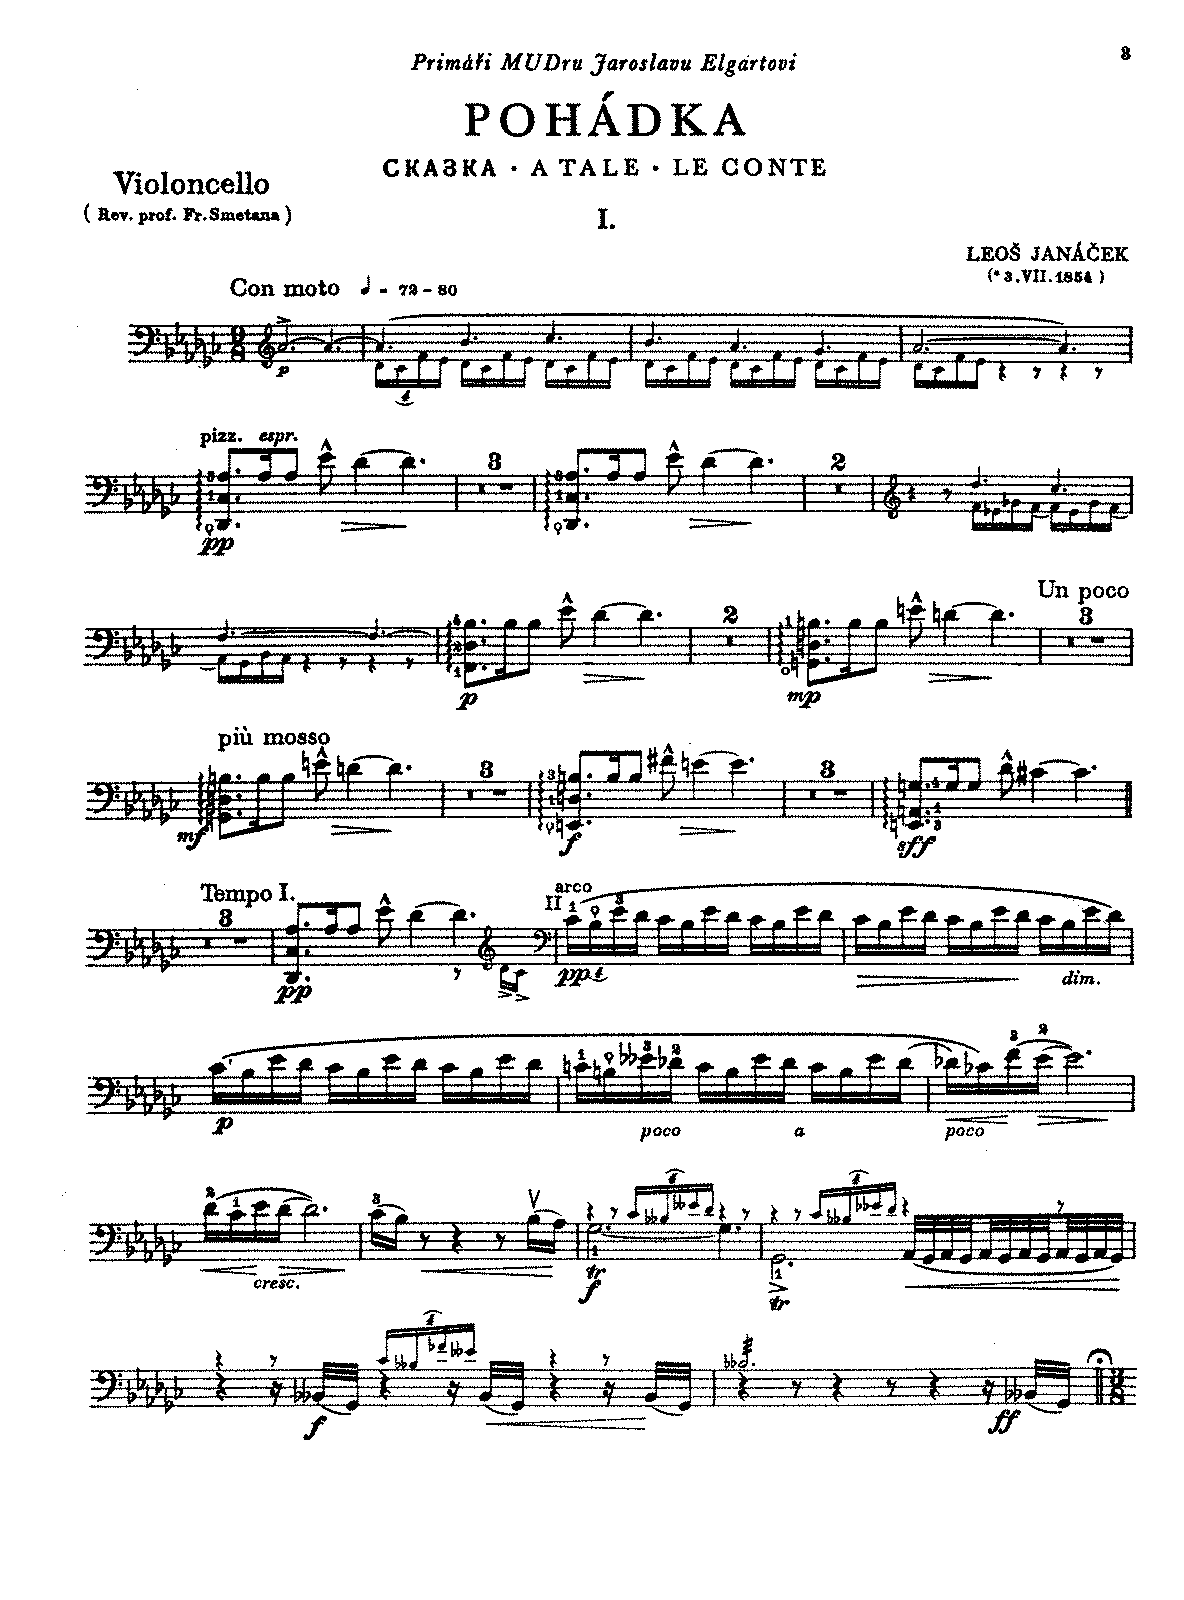 PMLP118048-Janáček - Pohádka (cello and piano).pdf